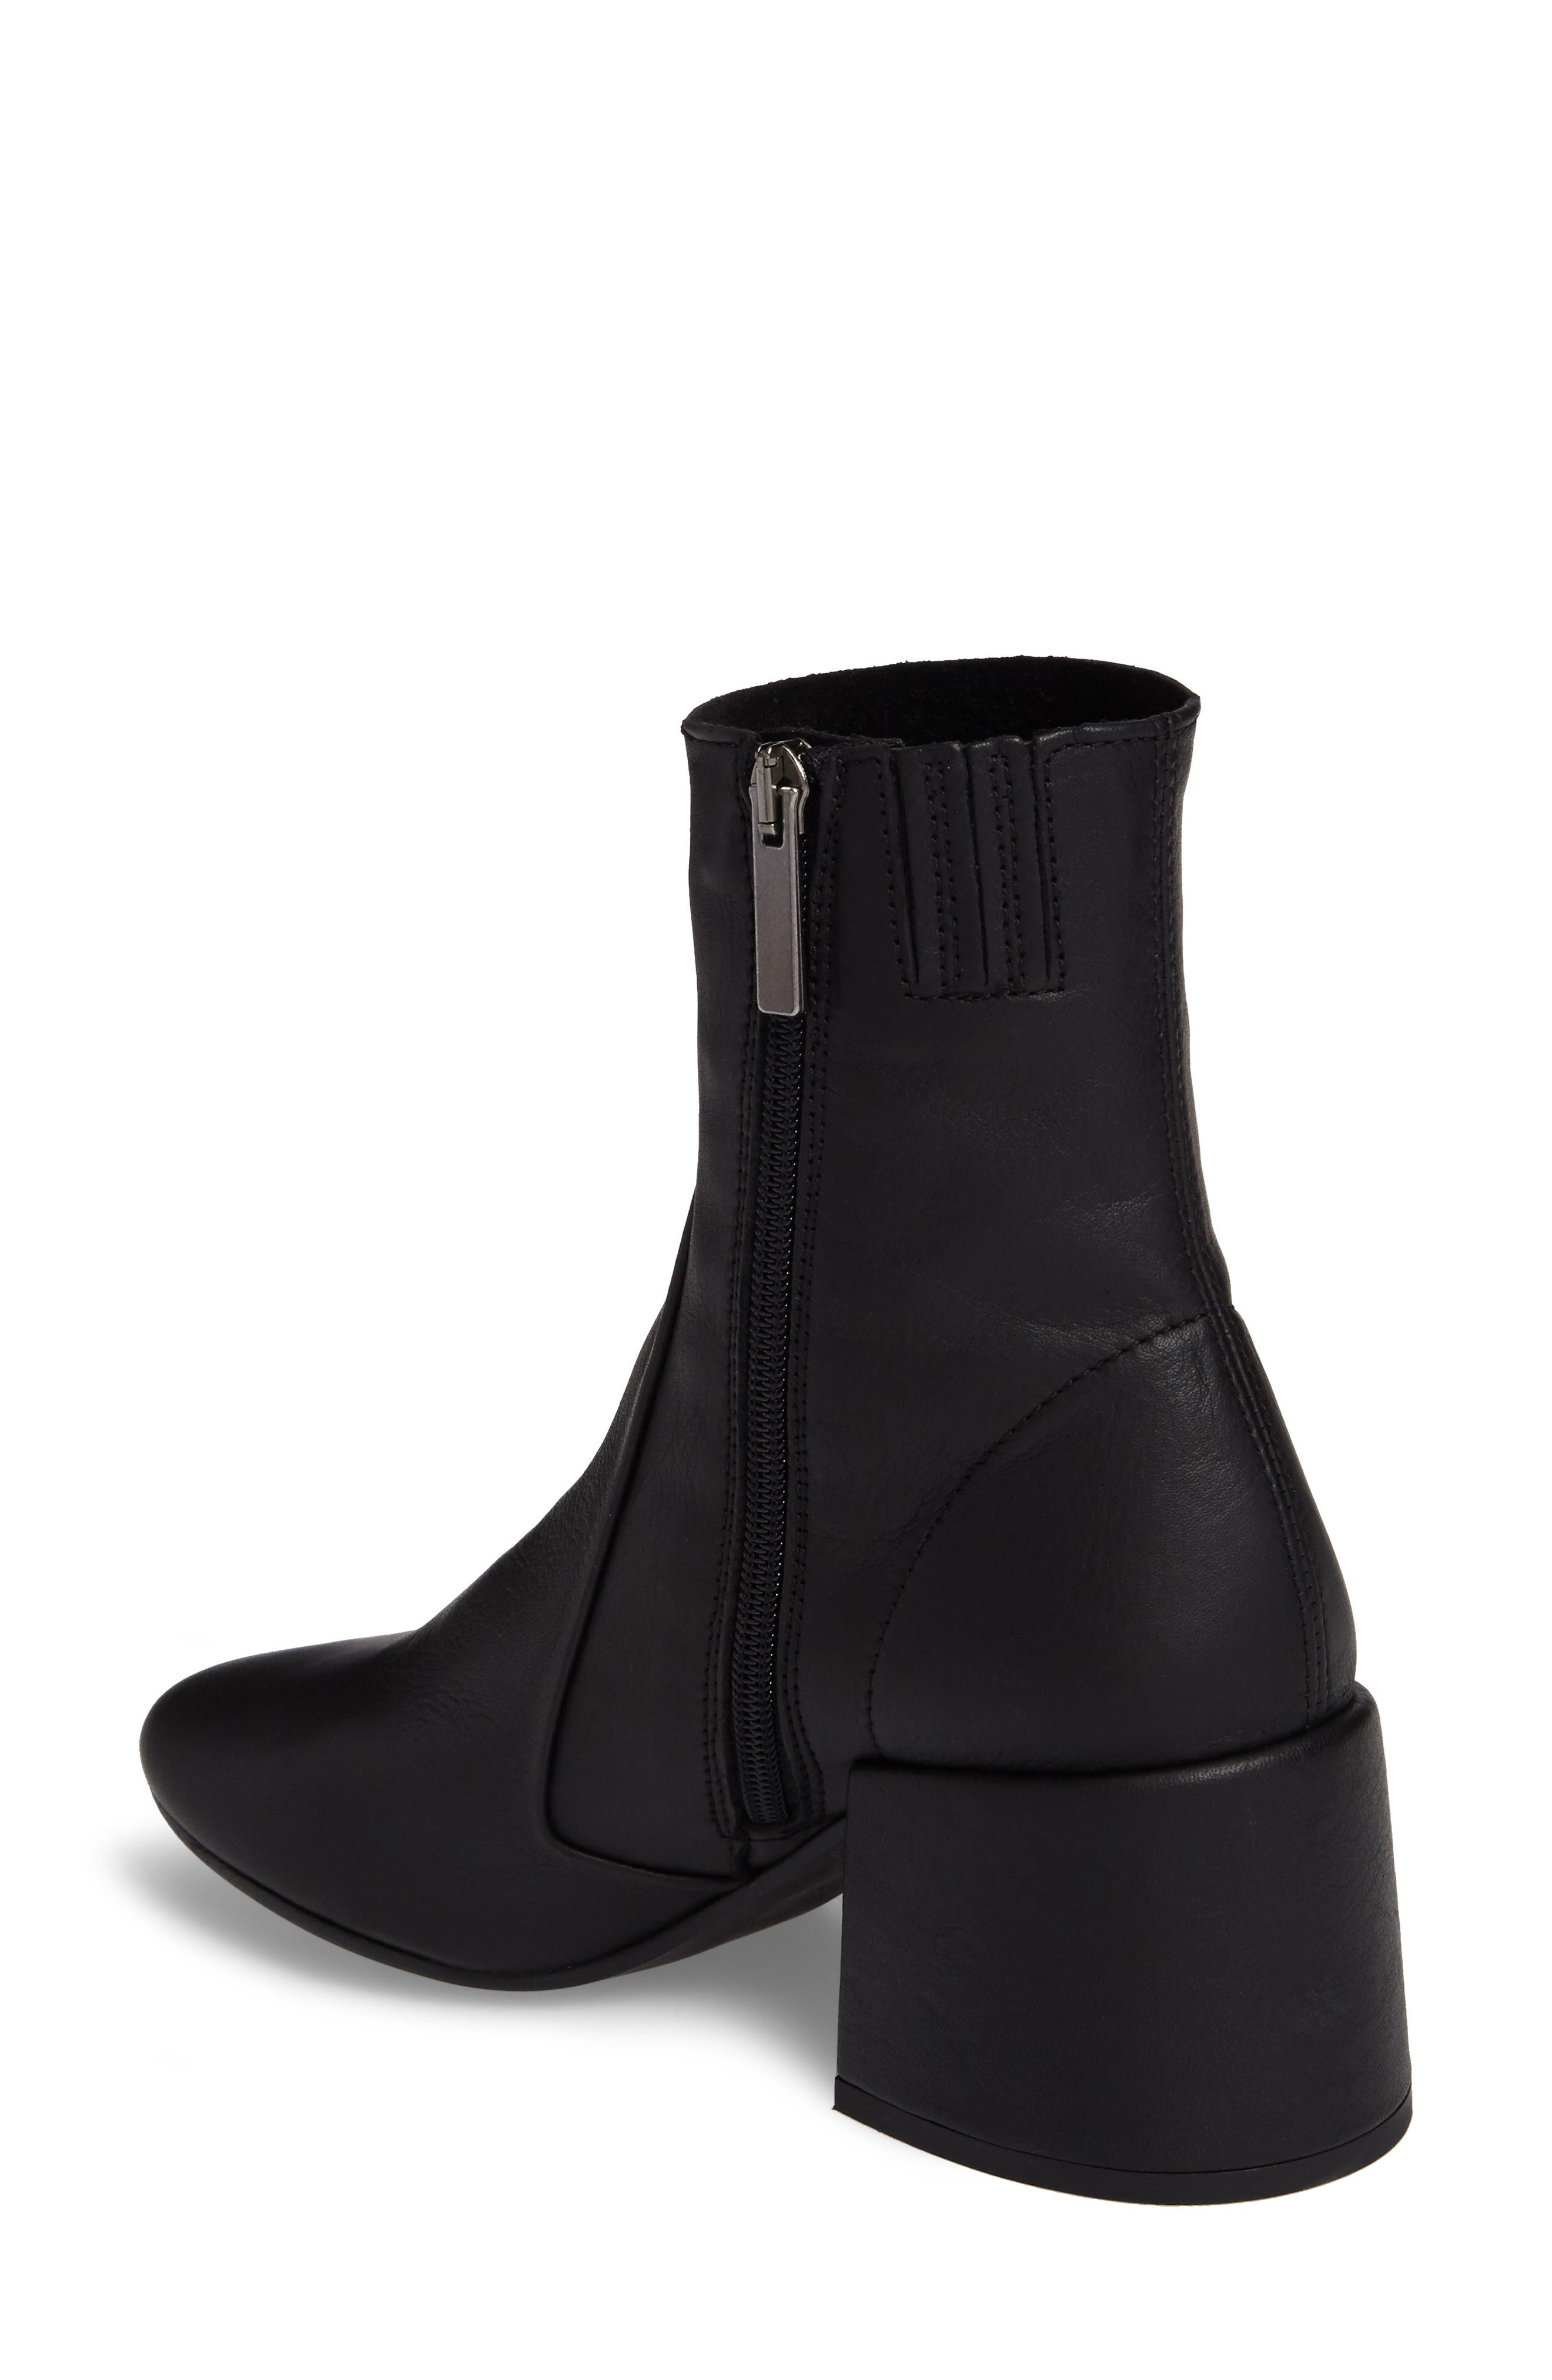 Ashcroft Bootie,                             Alternate thumbnail 2, color,                             Black